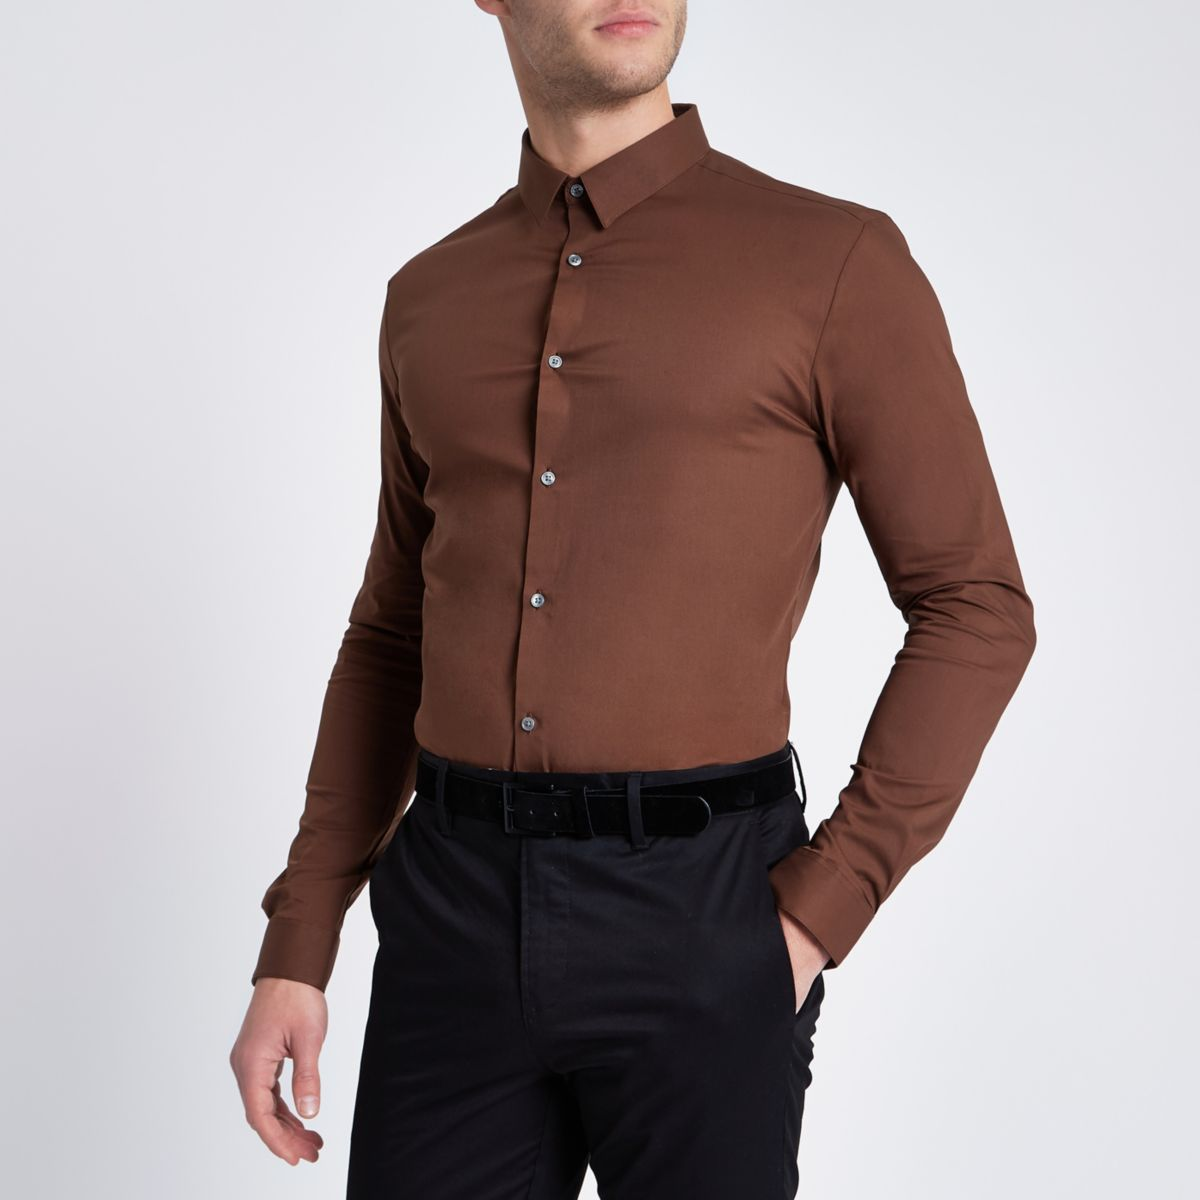 Enjoy free shipping and easy returns every day at Kohl's. Find great deals on Mens Brown Button-Down Shirts Long Sleeve Tops at Kohl's today!